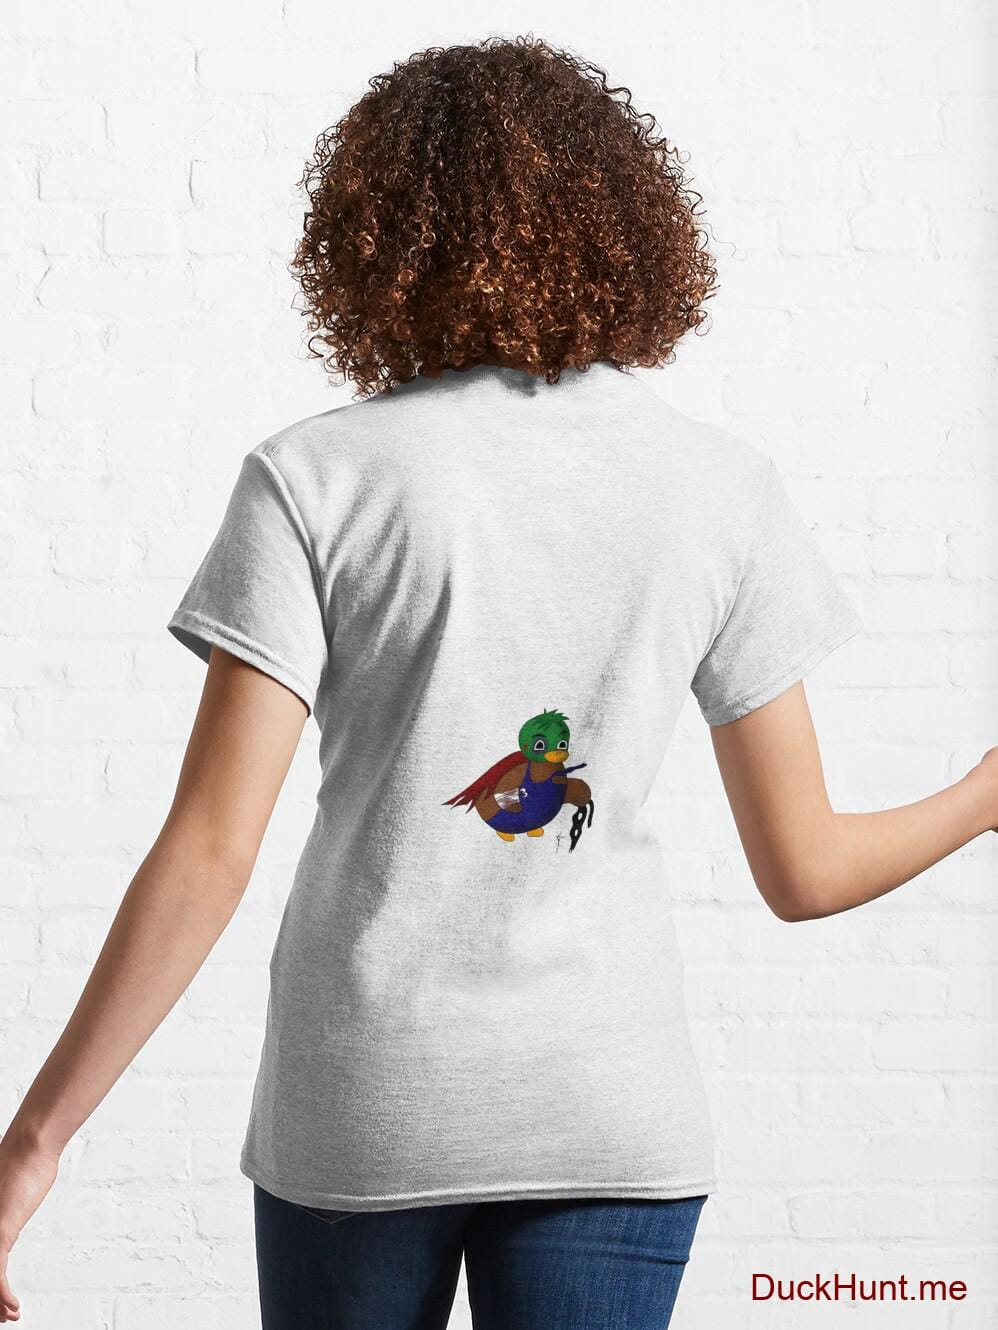 Dead DuckHunt Boss (smokeless) White Classic T-Shirt (Back printed) alternative image 4